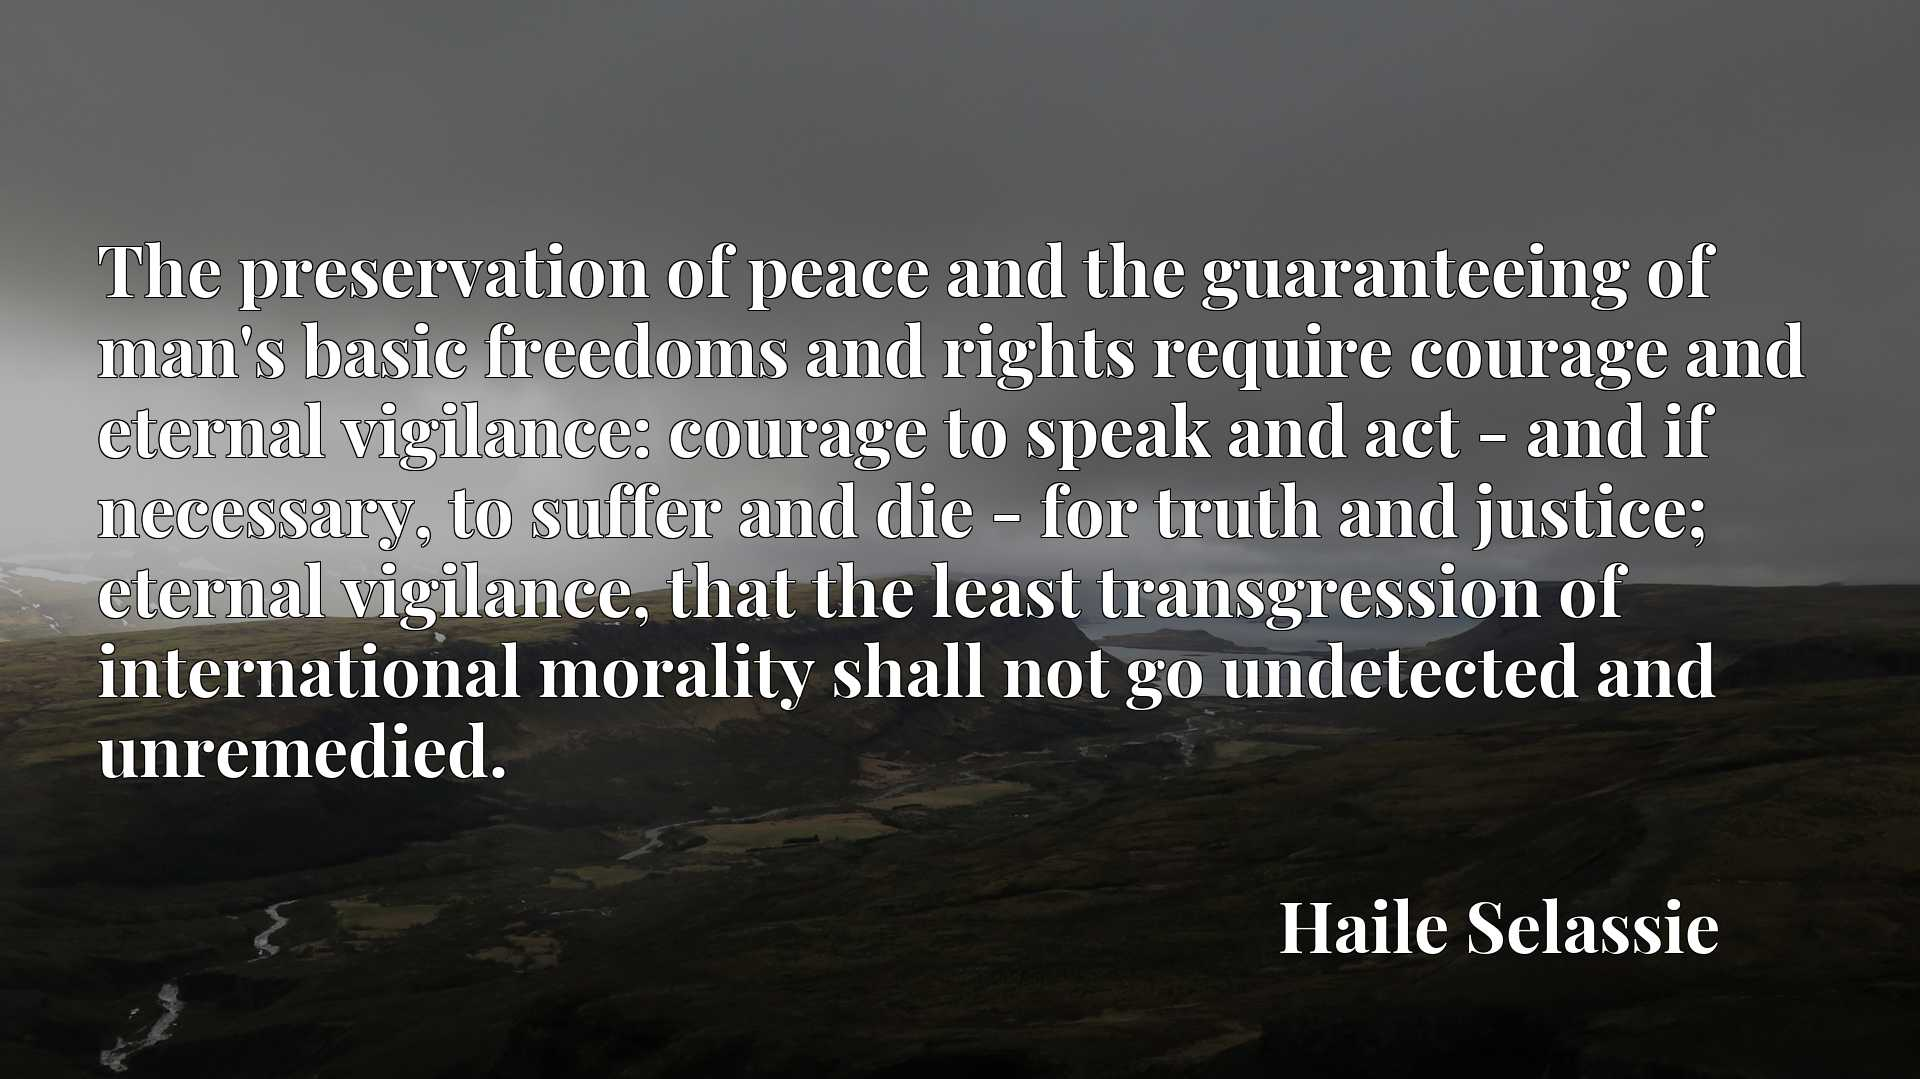 The preservation of peace and the guaranteeing of man's basic freedoms and rights require courage and eternal vigilance: courage to speak and act - and if necessary, to suffer and die - for truth and justice; eternal vigilance, that the least transgression of international morality shall not go undetected and unremedied.